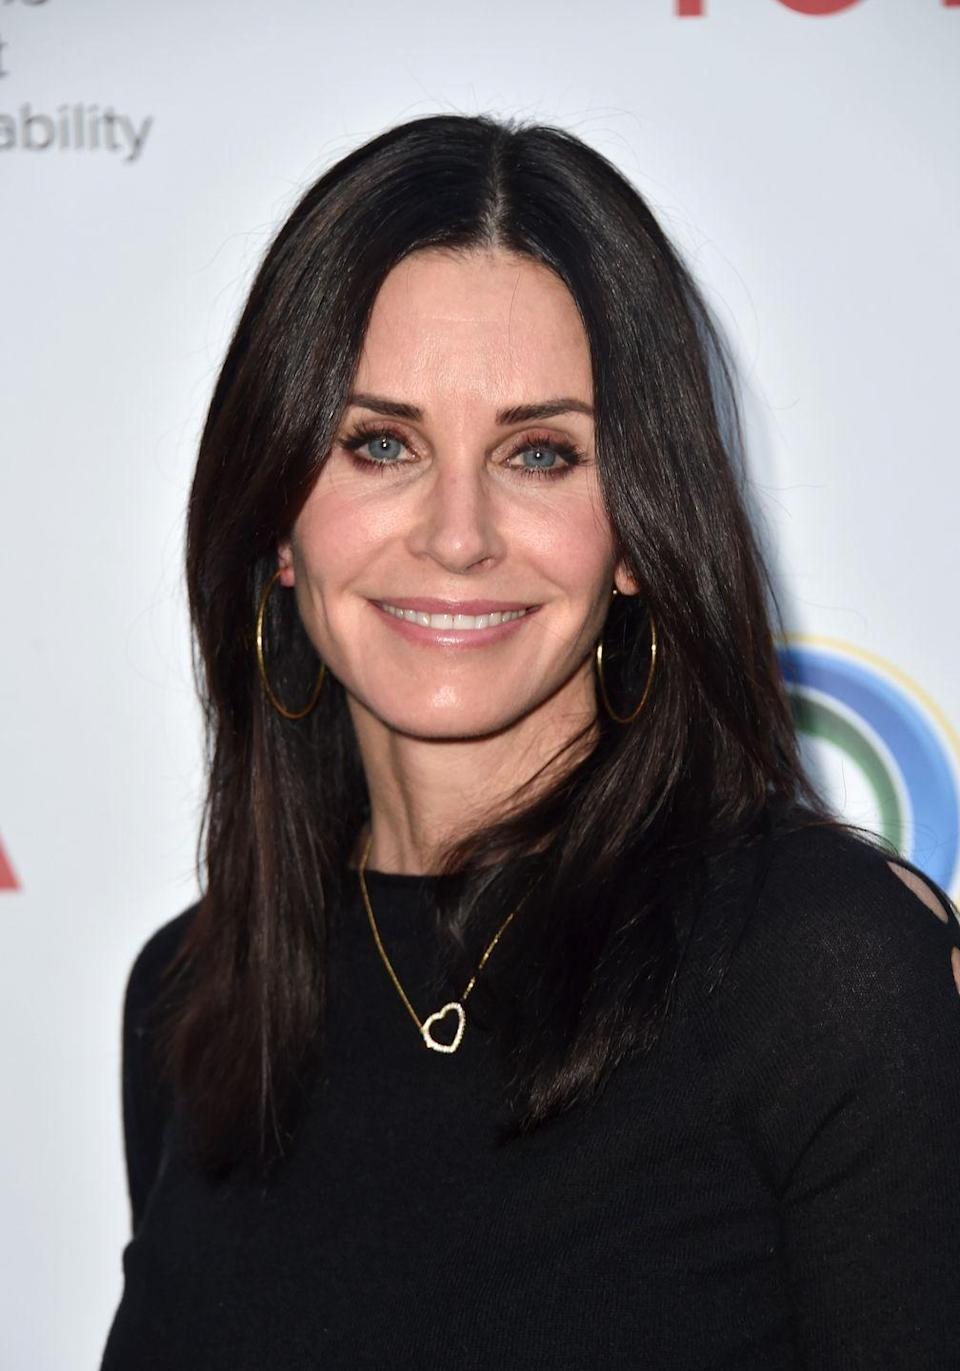 "<p>Courteney Cox said many doctors suggest she get fillers every now and then, which led to layers upon layers of cosmetic enhancement that she didn't like. ""I've had all my fillers dissolved. I'm as natural as I can be,"" the <em>Friends </em>star <a href=""https://www.newbeauty.com/courteney-cox-beauty/"" rel=""nofollow noopener"" target=""_blank"" data-ylk=""slk:told New Beauty"" class=""link rapid-noclick-resp"">told <em>New Beauty</em></a>. ""I feel better because I look like myself. I think that I now look more like the person that I was. I hope I do,"" she said.</p>"